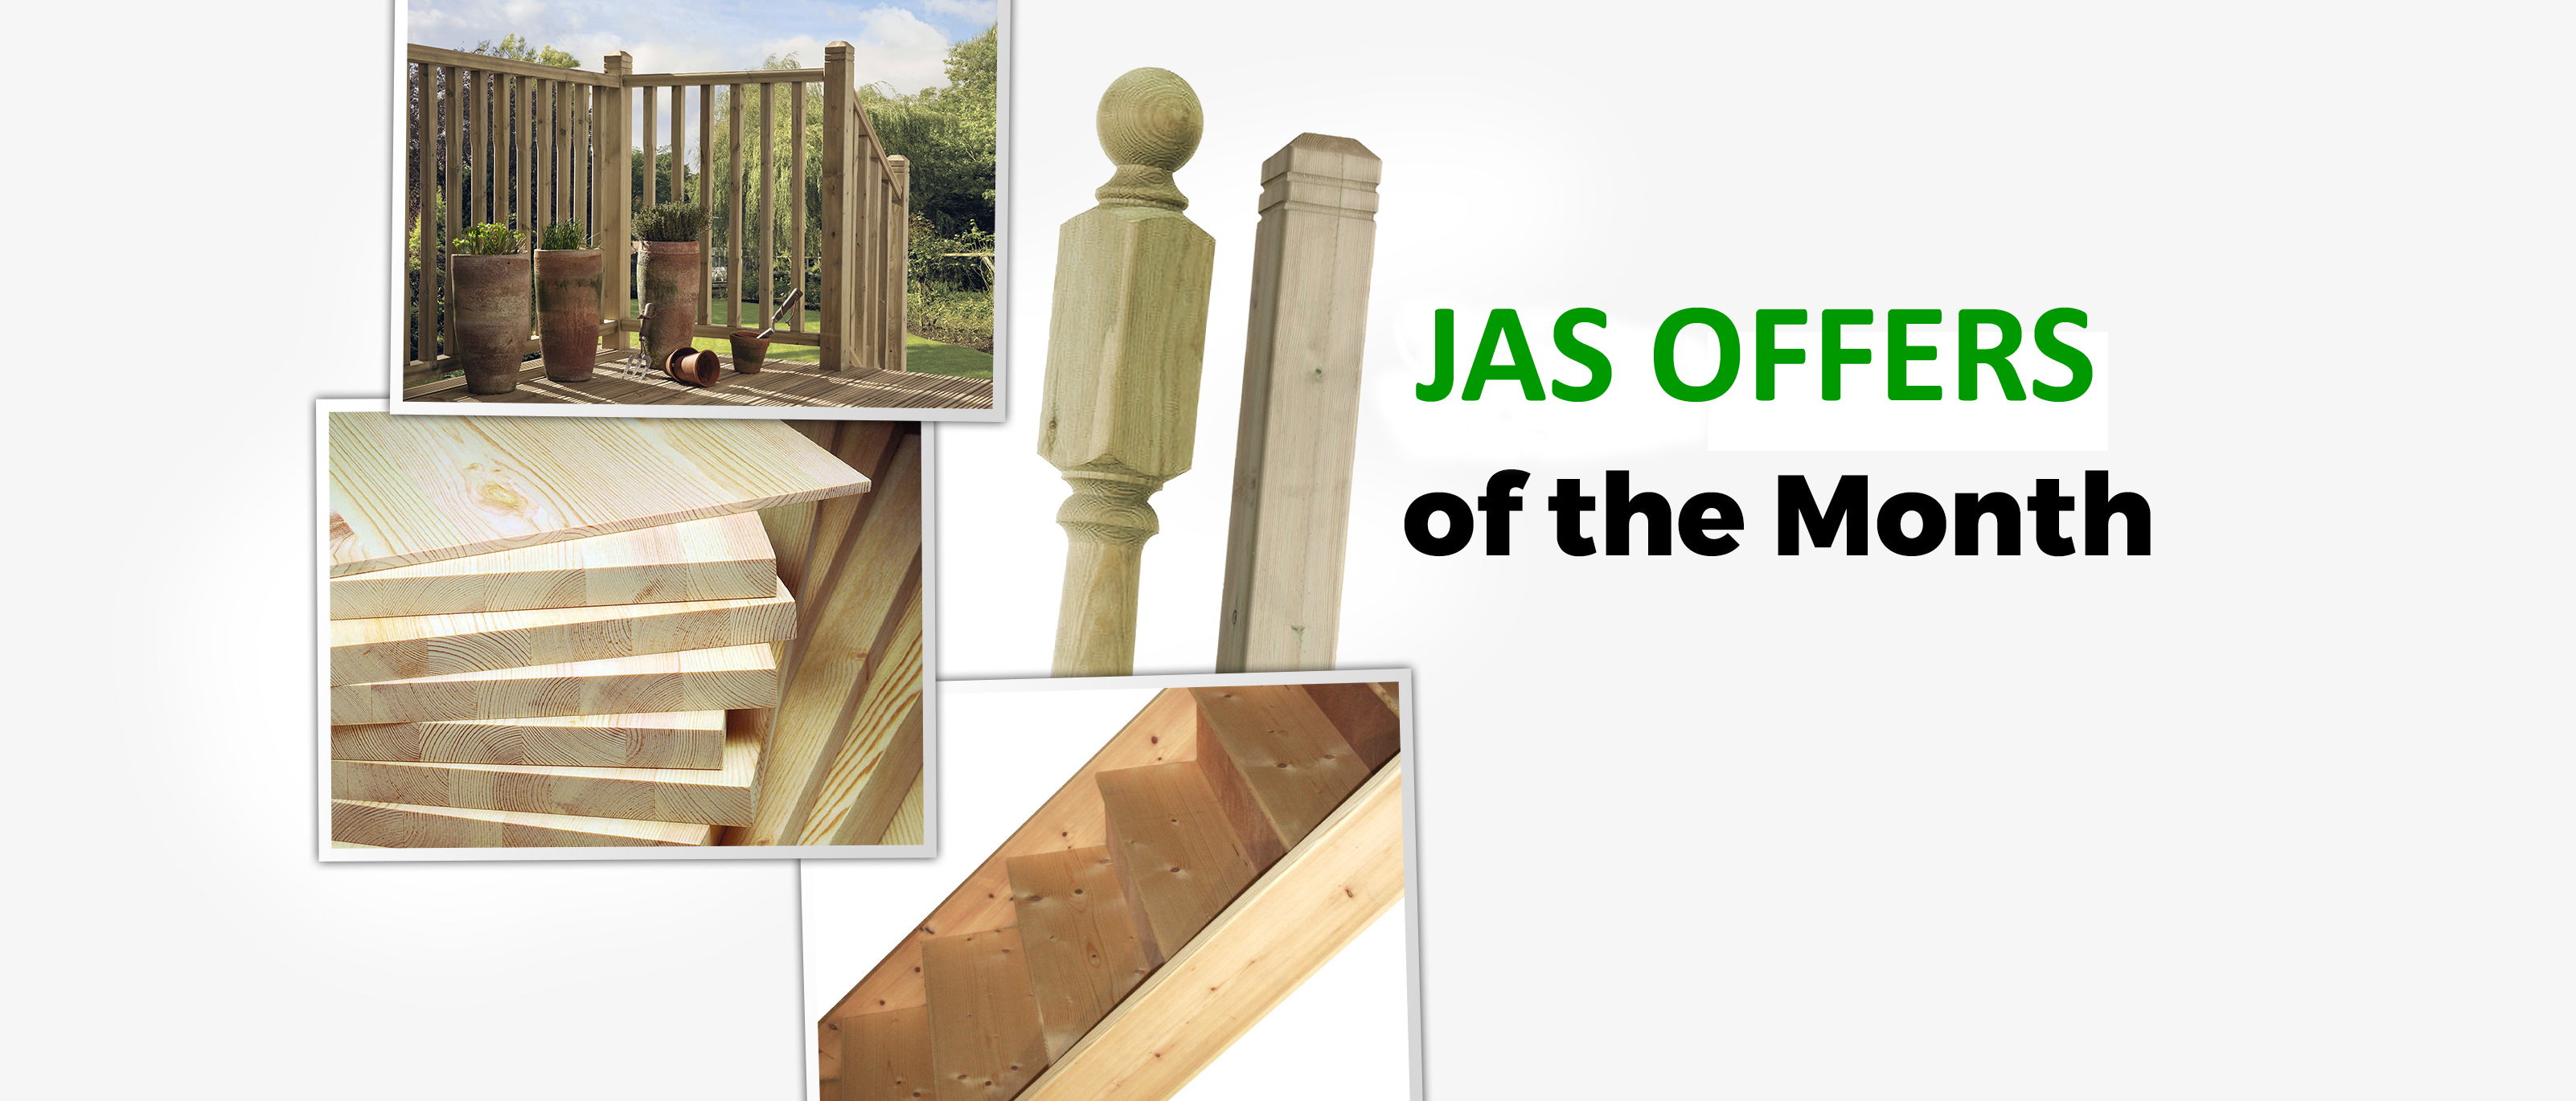 JAS Offers of the Month - September